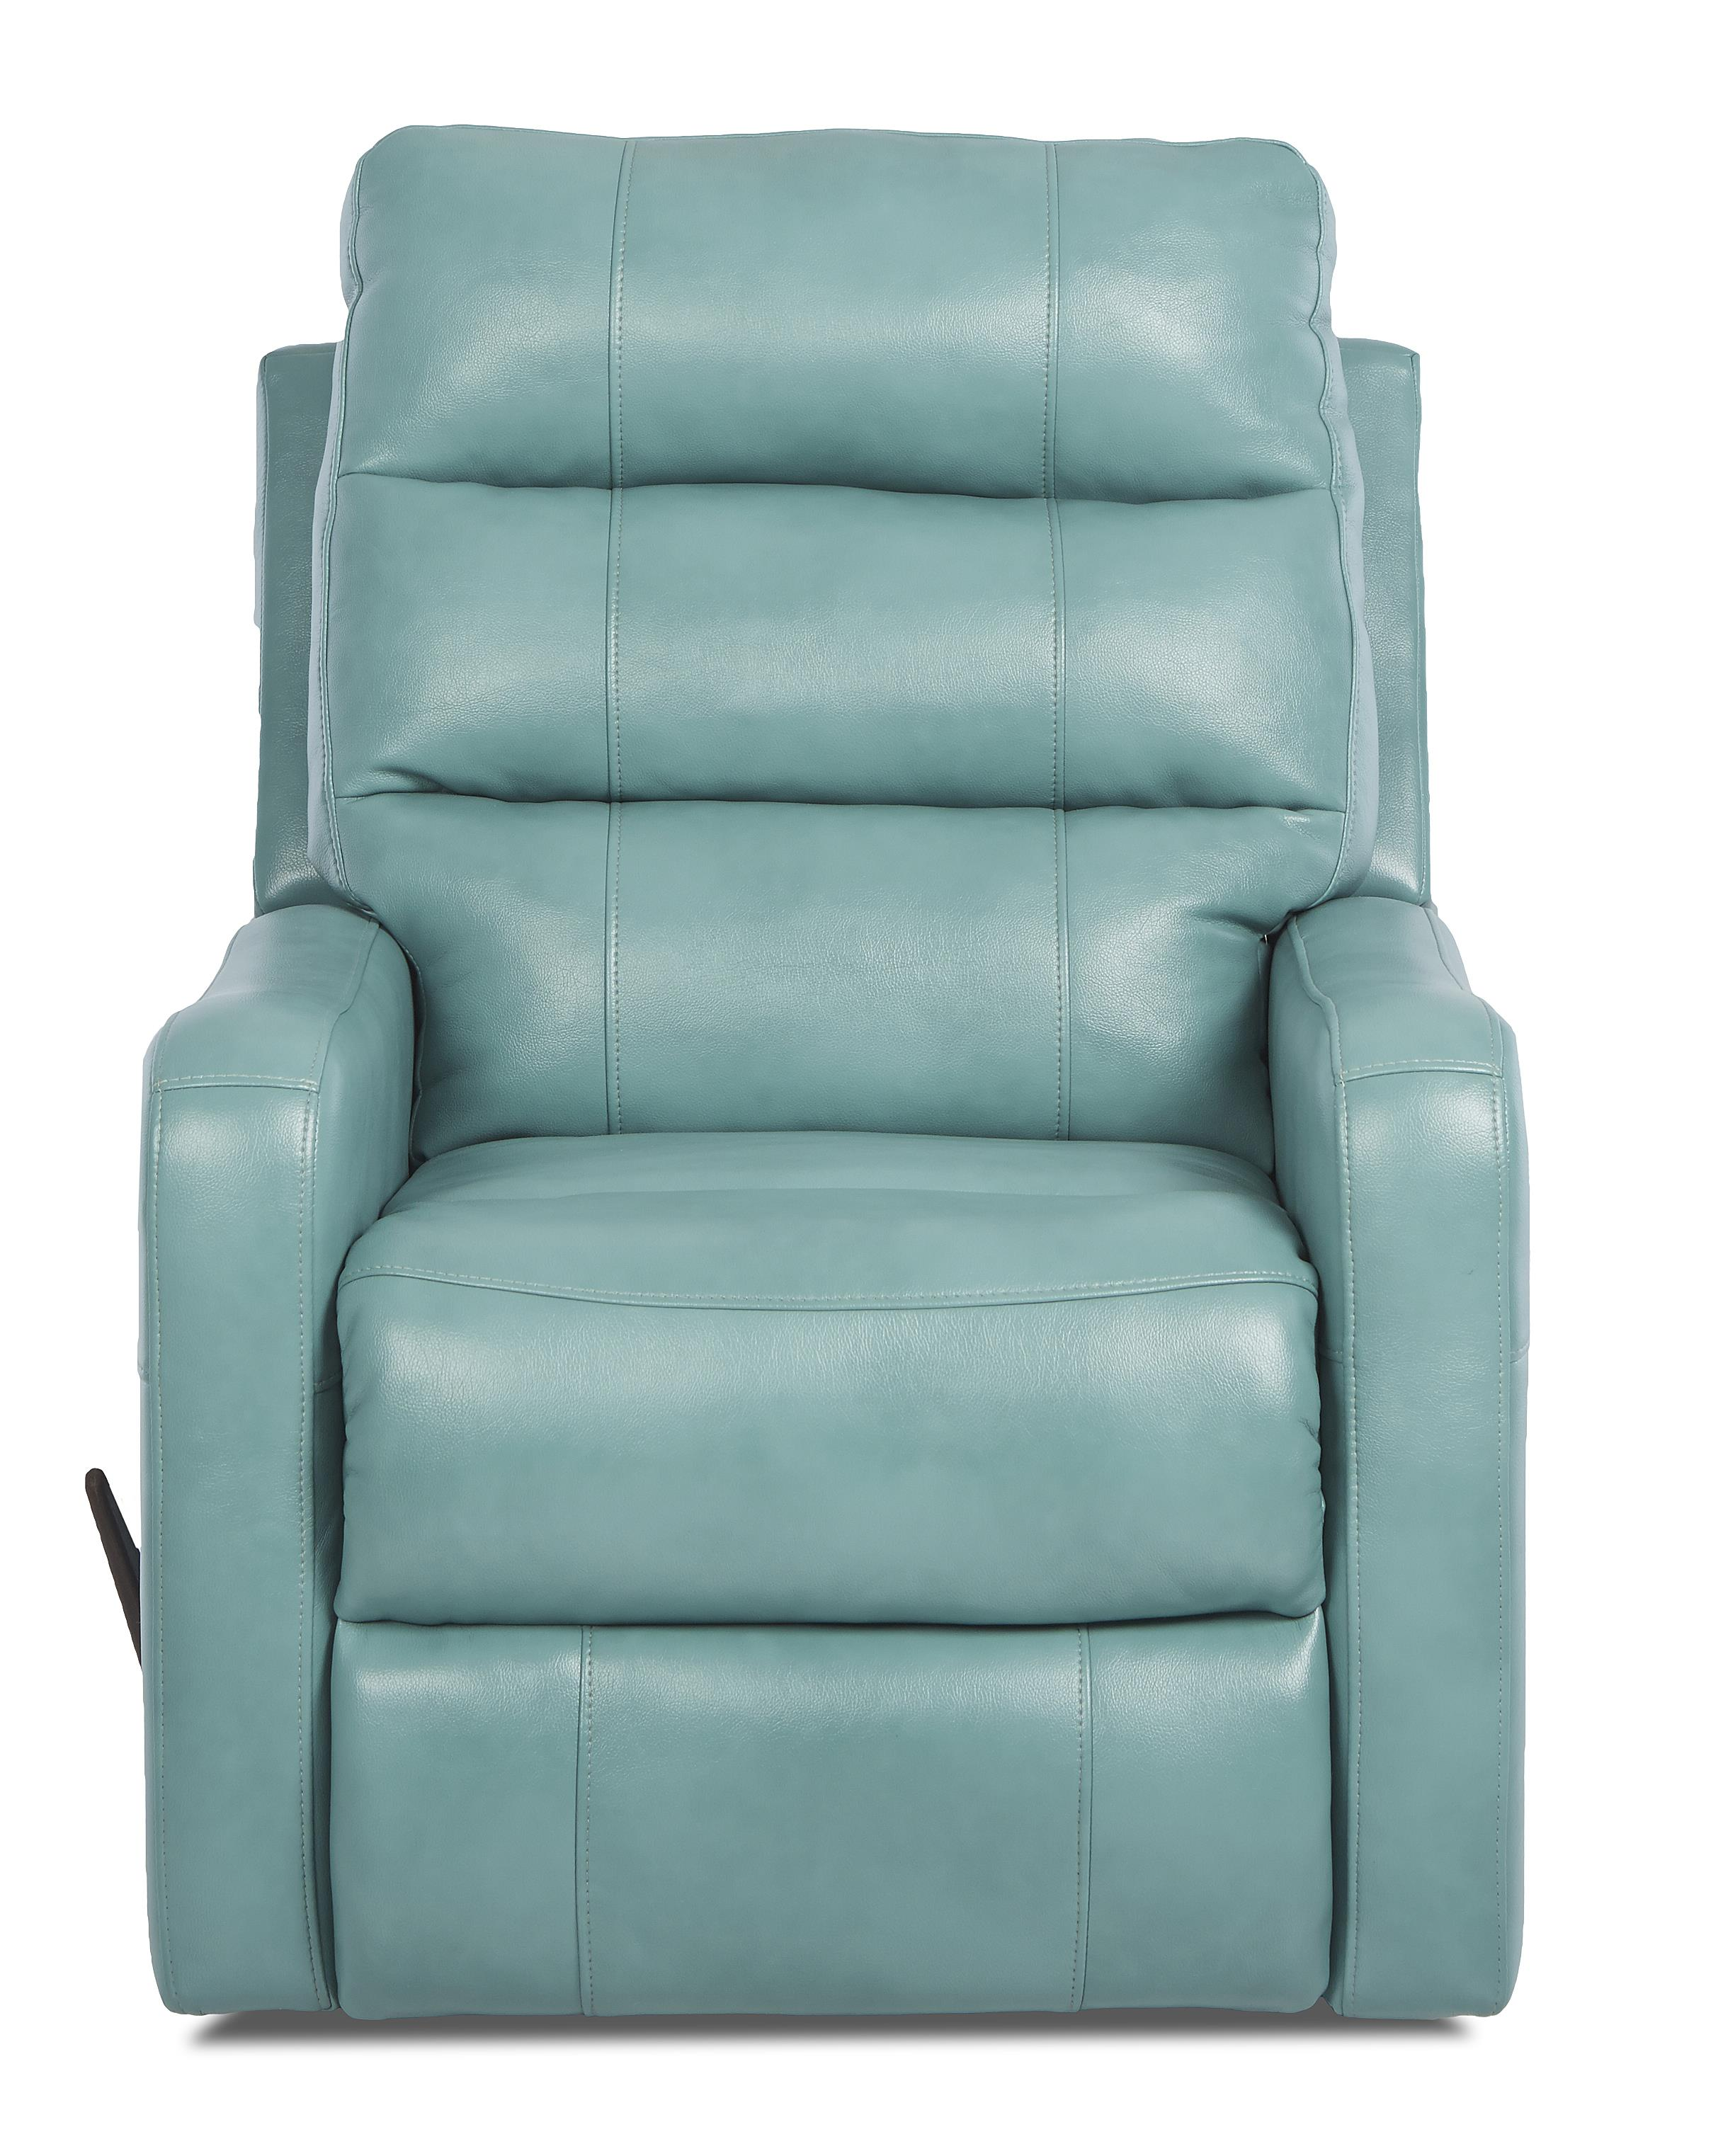 Klaussner Striker Contemporary Power Rocking Reclining Chair - Item Number 86143 PWRRC-JupiterAqua  sc 1 st  Wayside Furniture & Klaussner Striker Contemporary Power Rocking Reclining Chair ... islam-shia.org